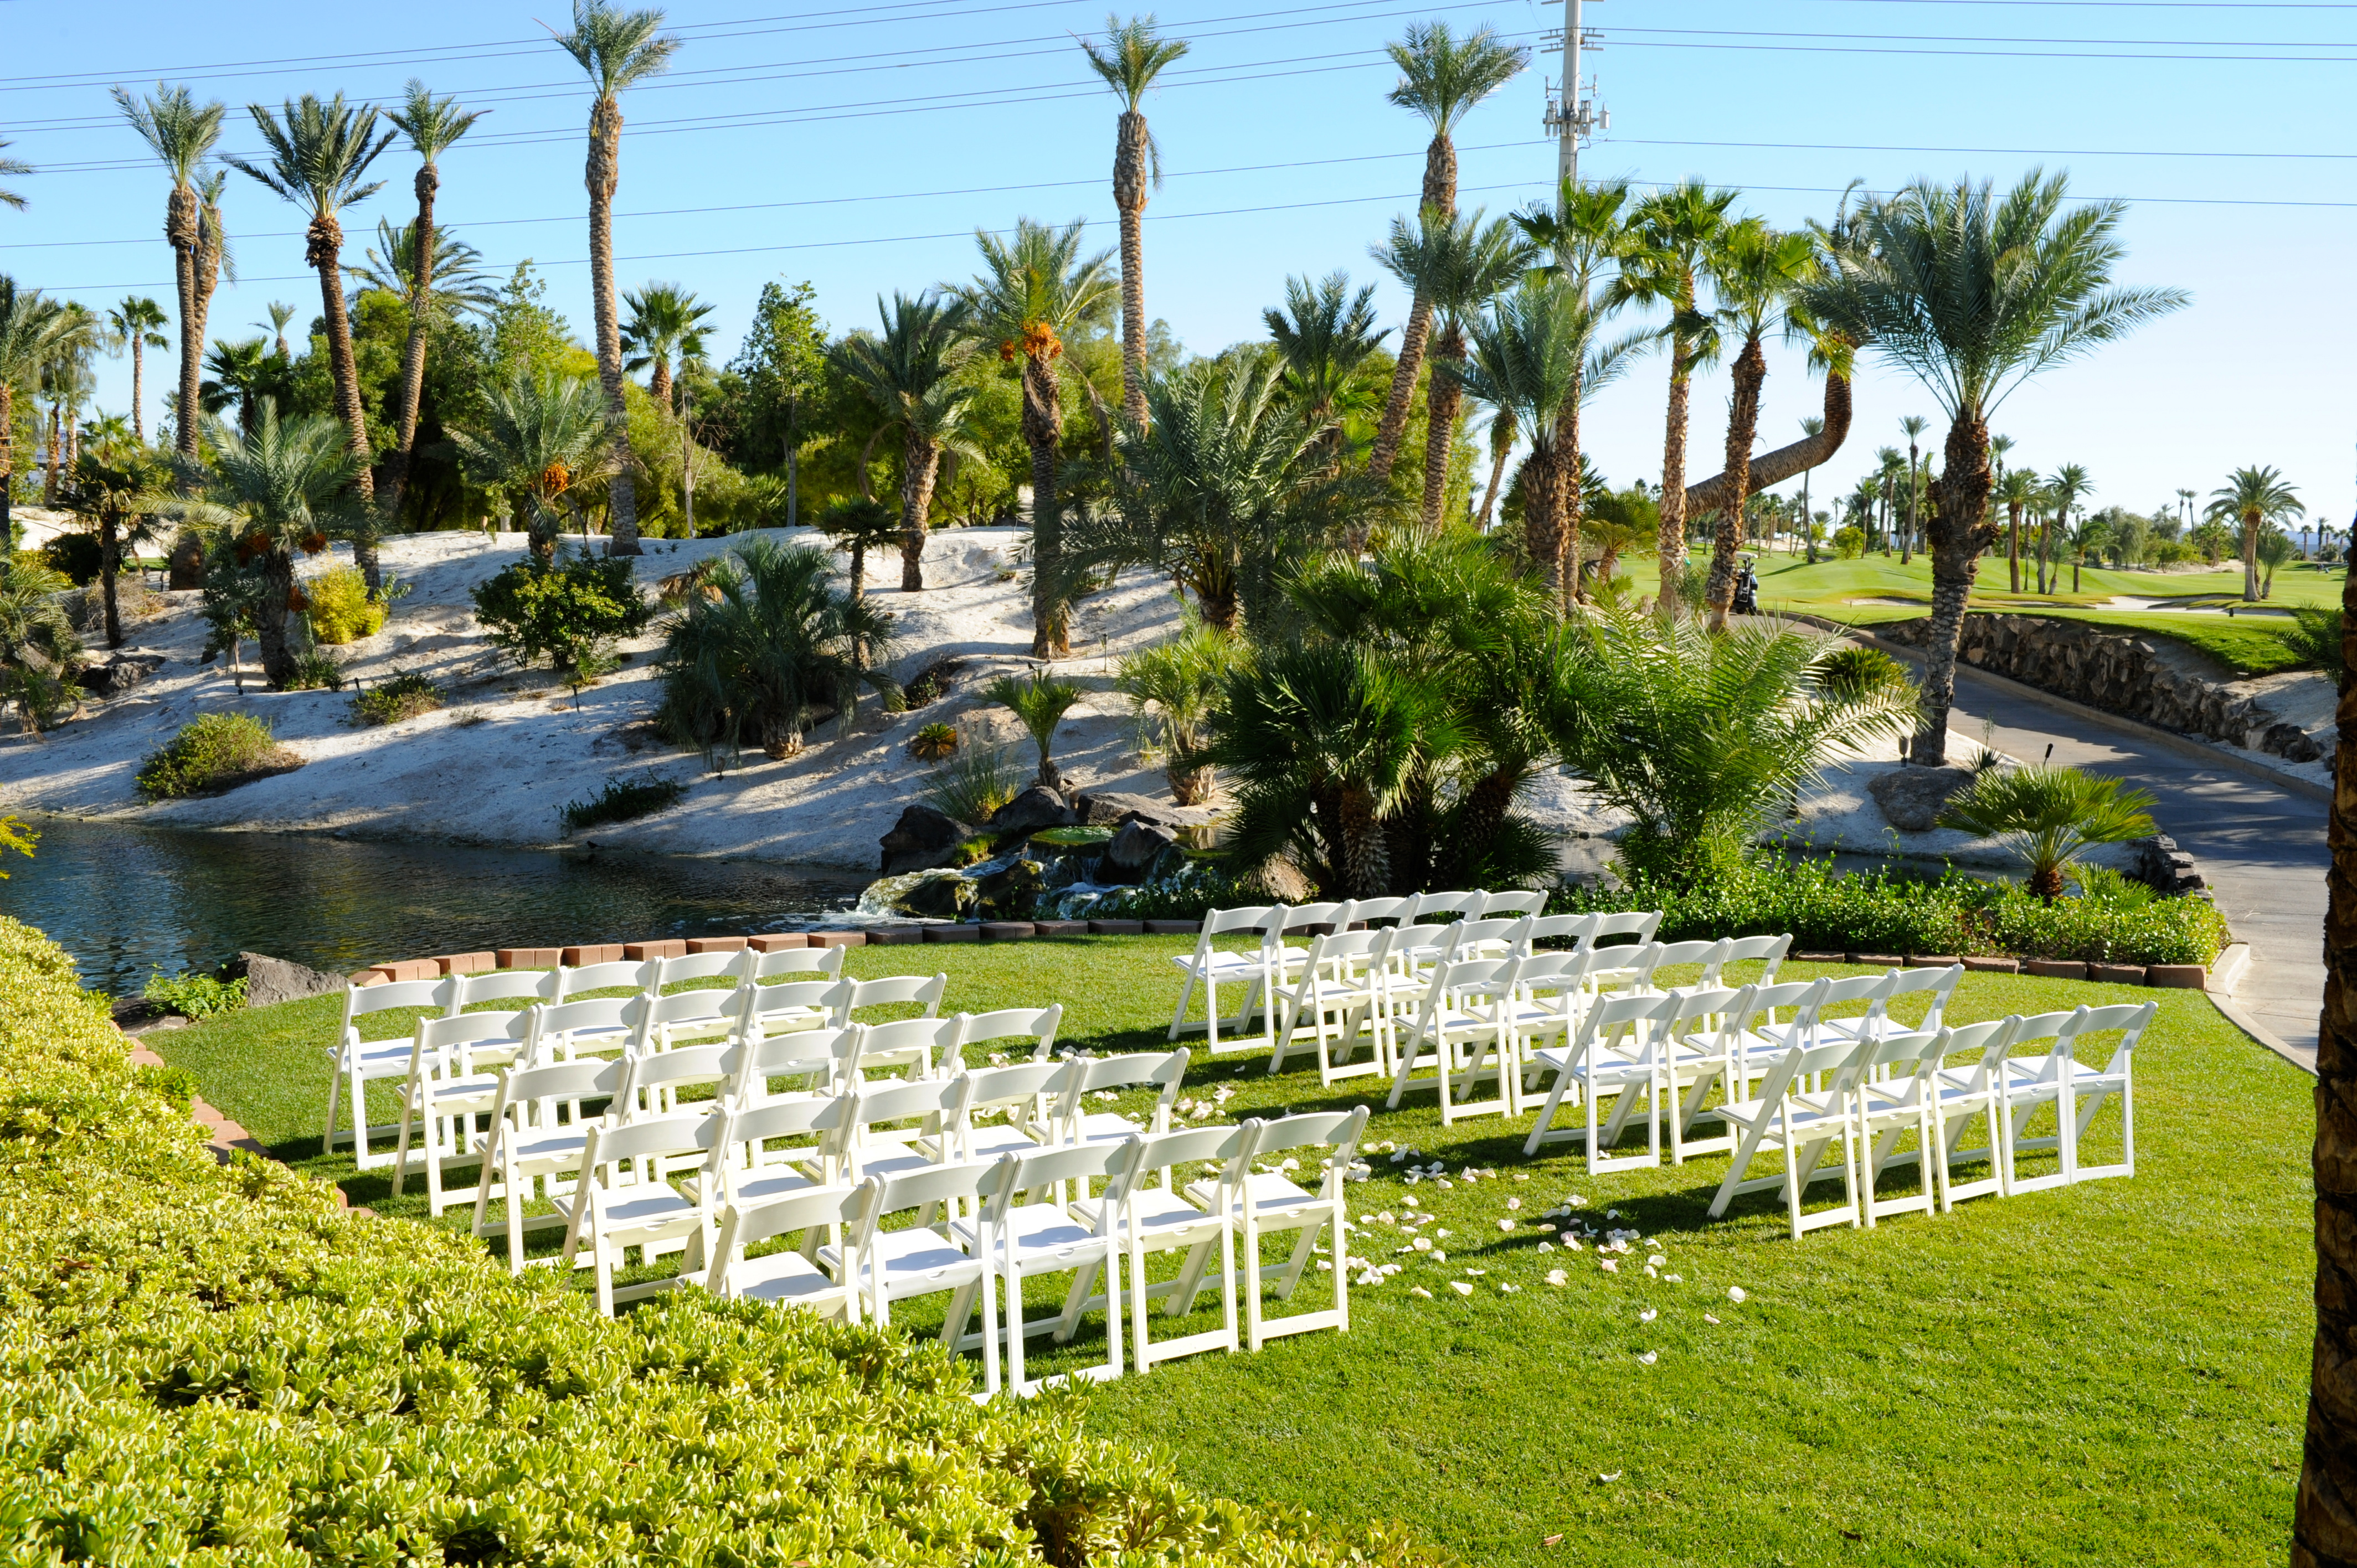 Director Of Events For Cili Nicole Martin Said They Try To Make It As Easy Possible Their Brides Stay Relaxed During The Entire Planning Process